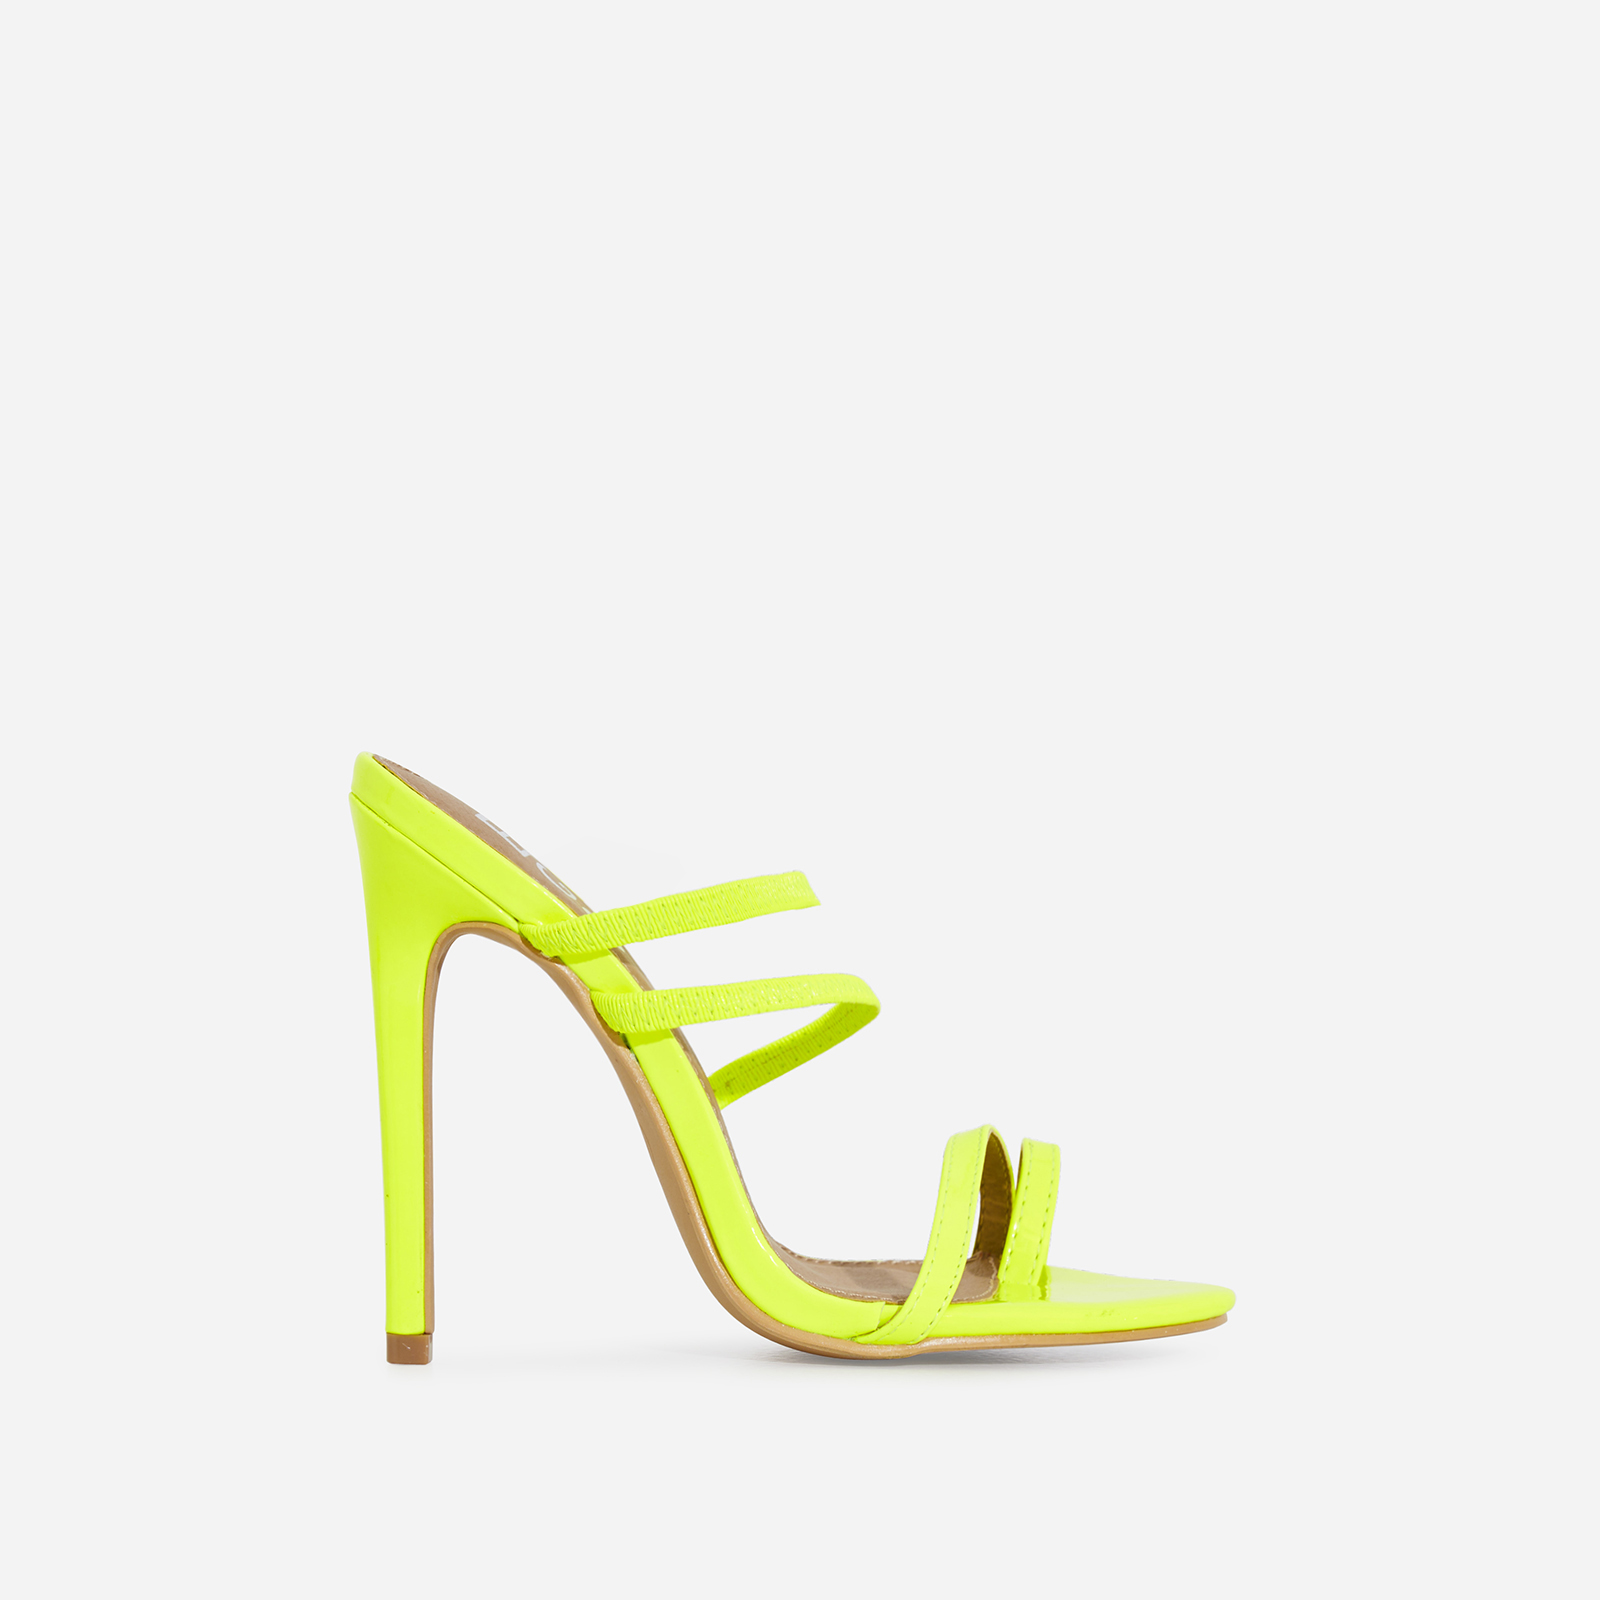 Letty Toe Strap Heel Mule In Lime Green Faux Leather